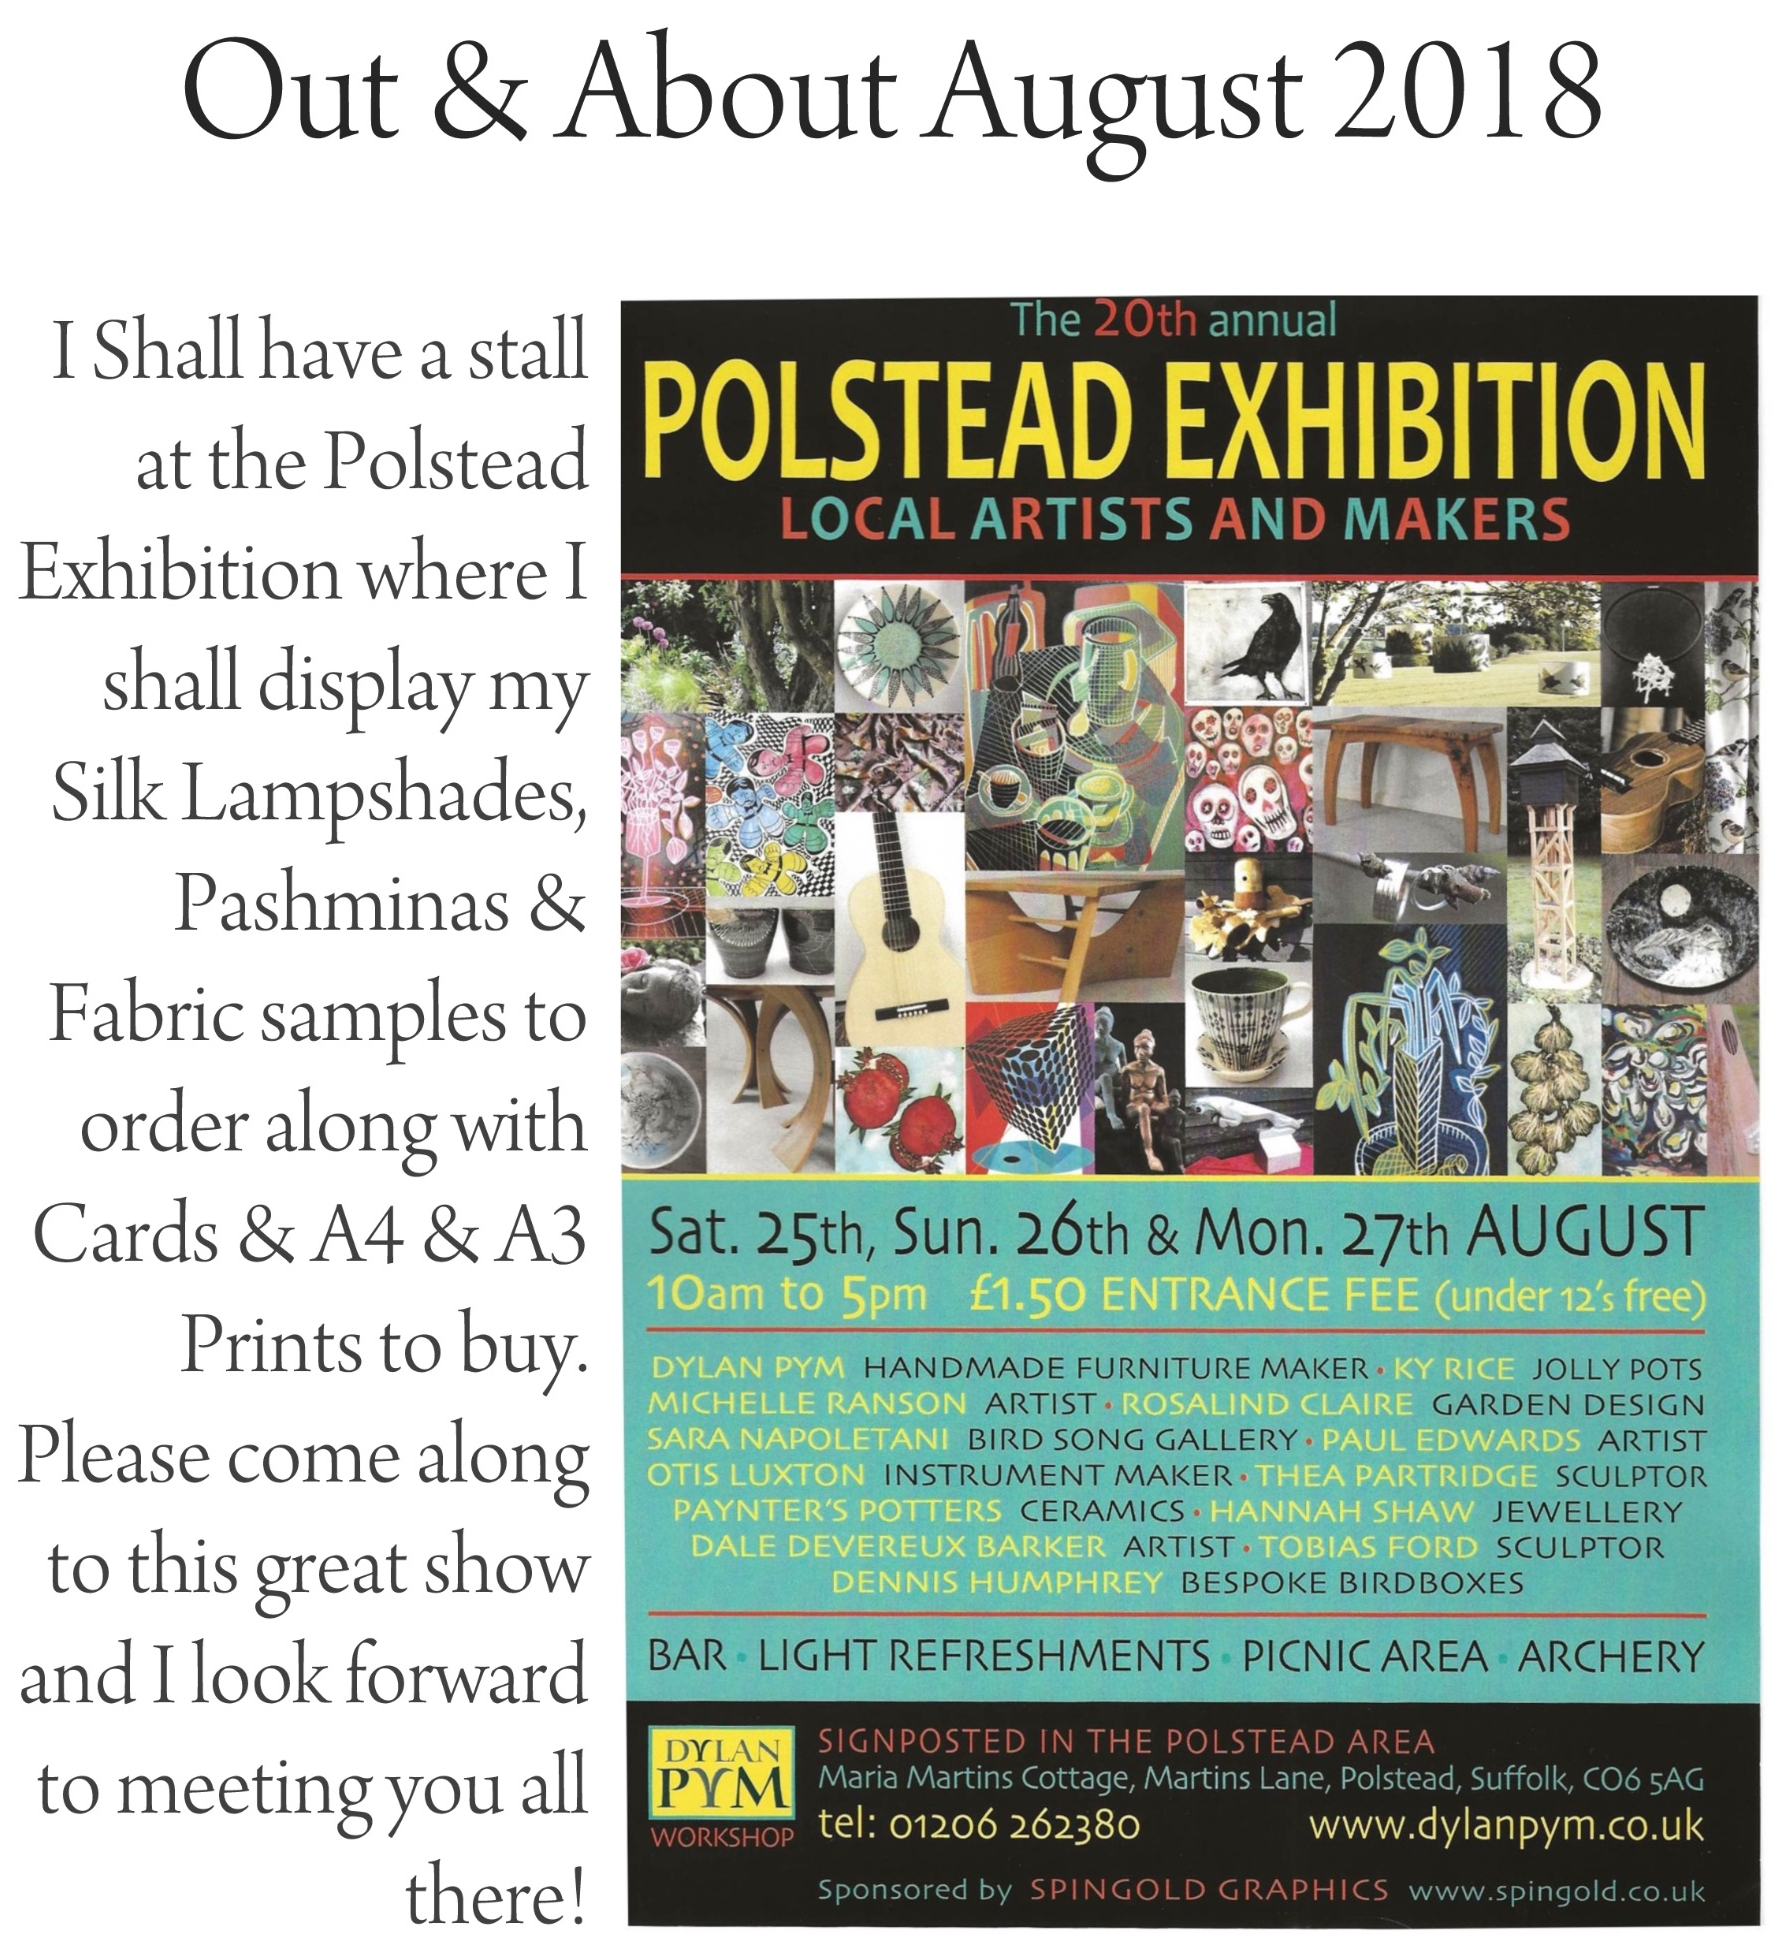 Polstead Exhibition